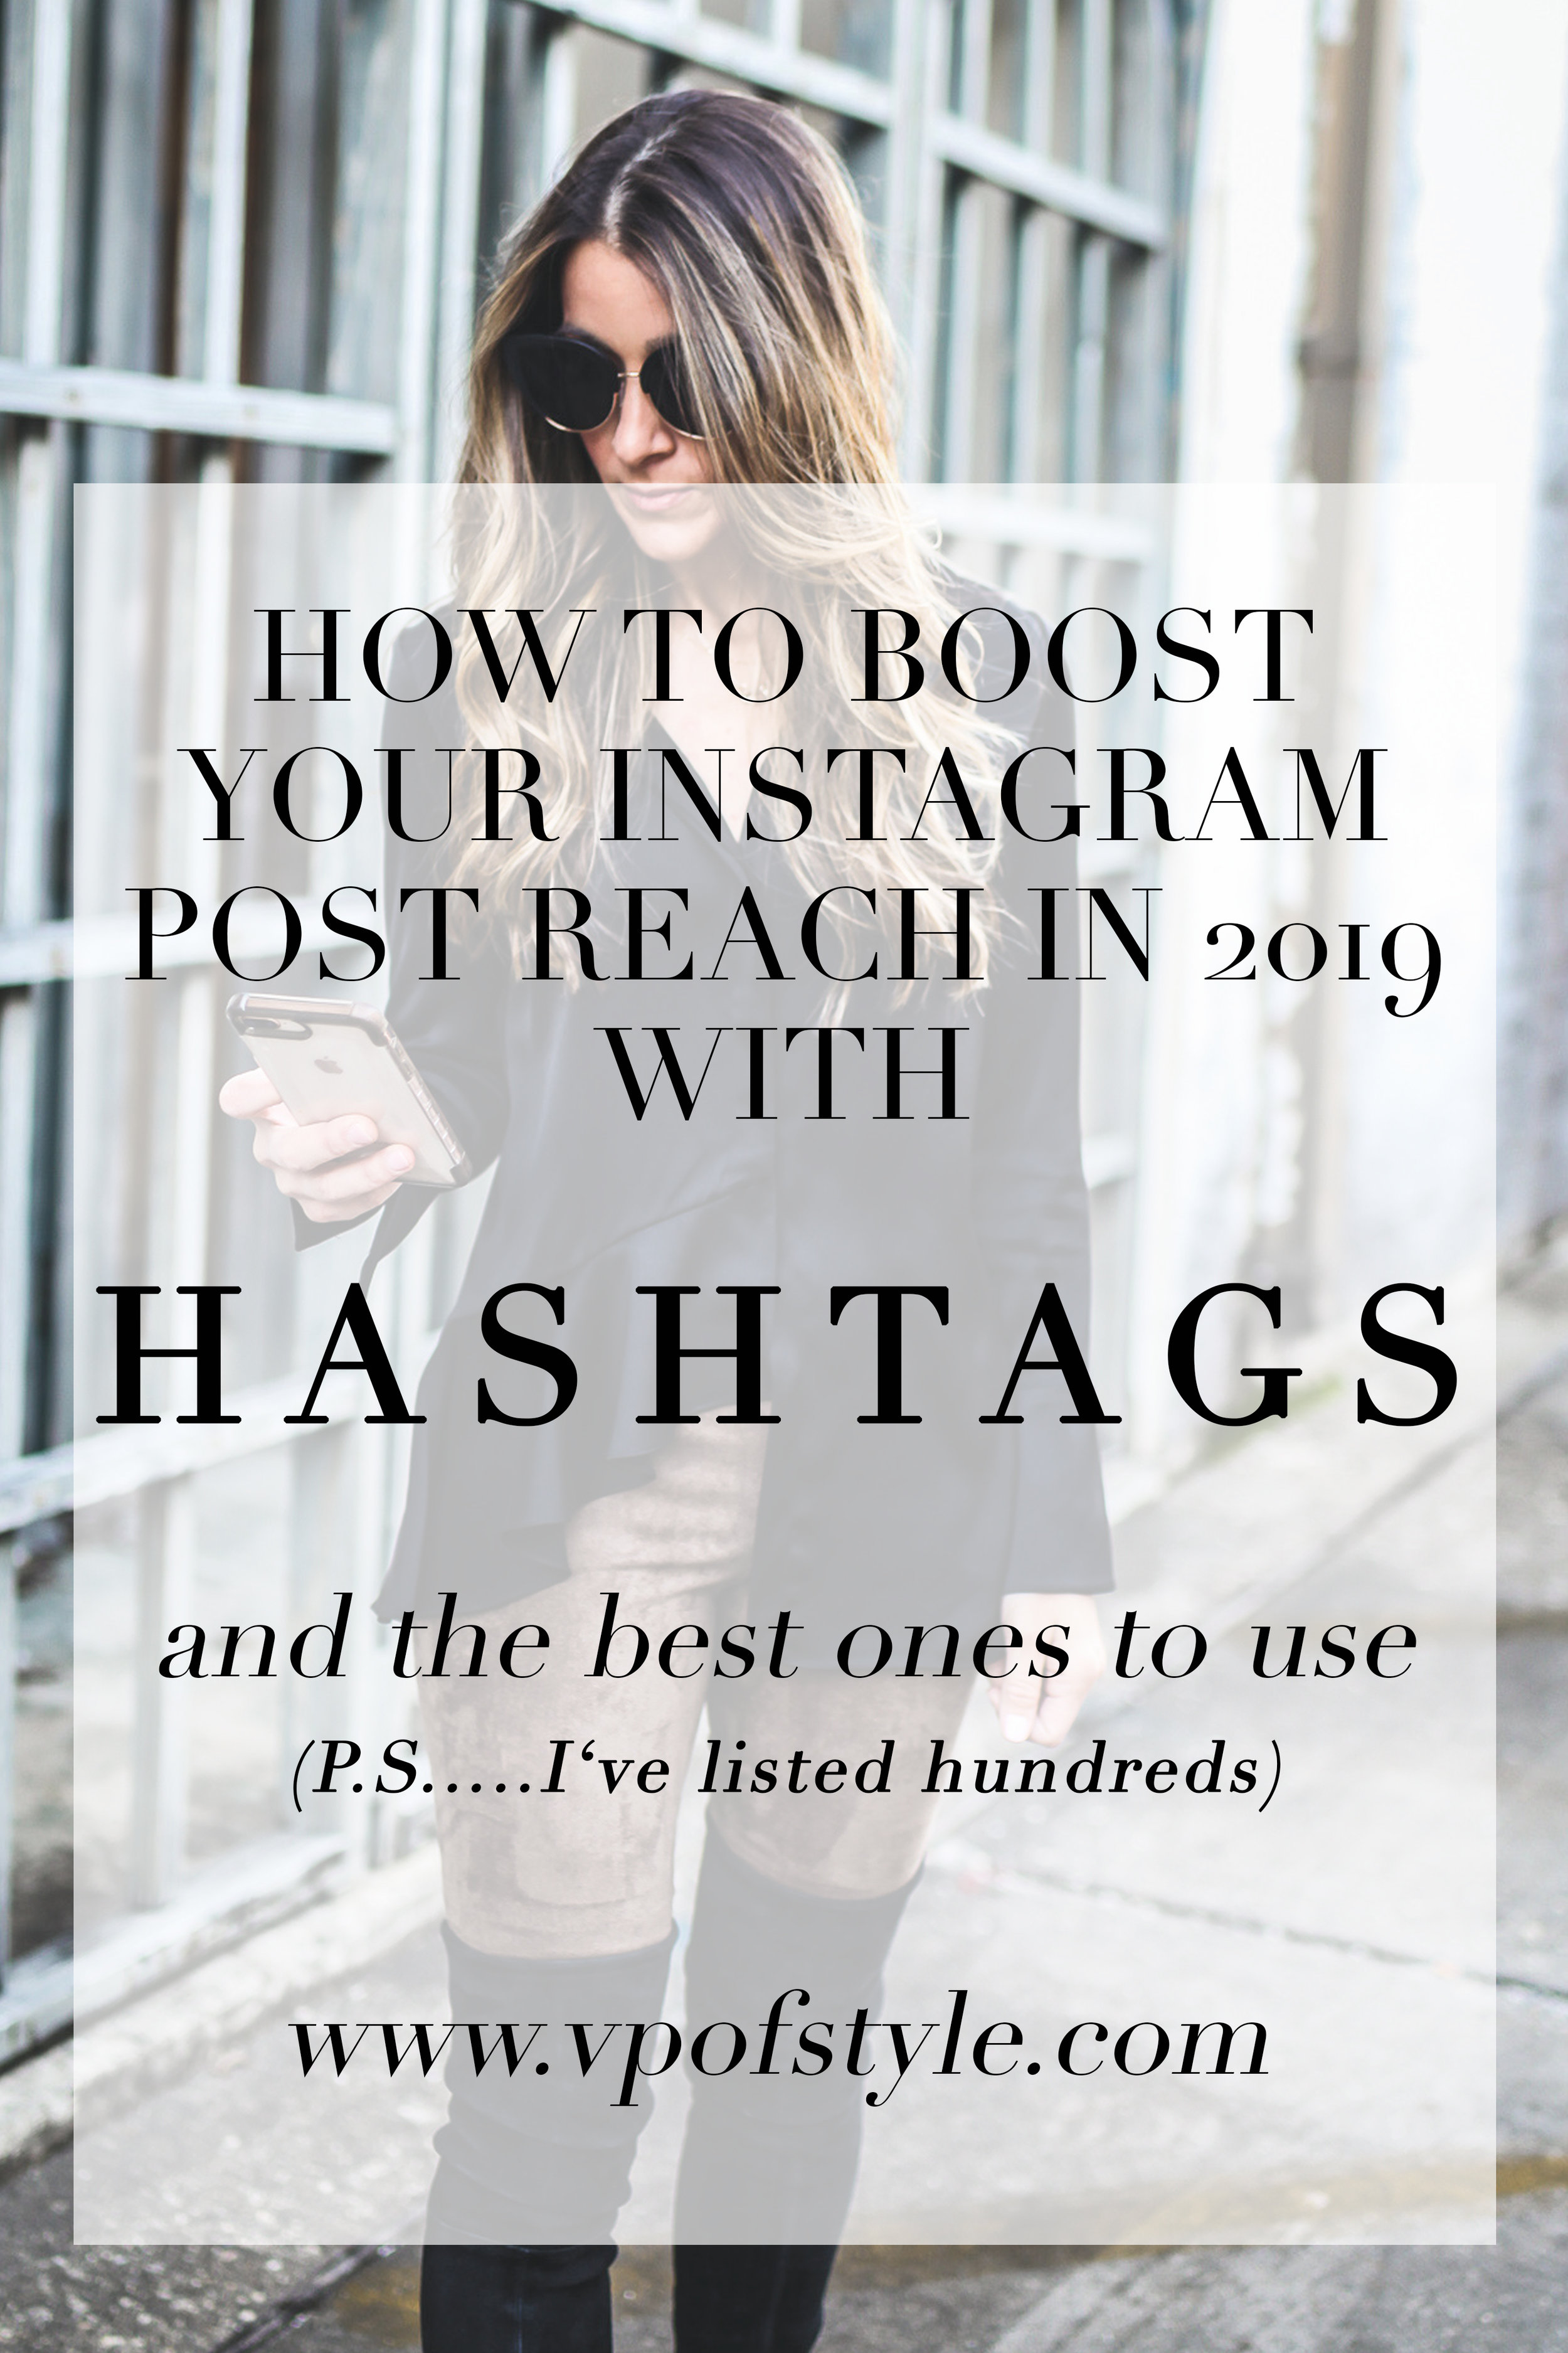 how to use hashtags to boost instagram post reach 2019